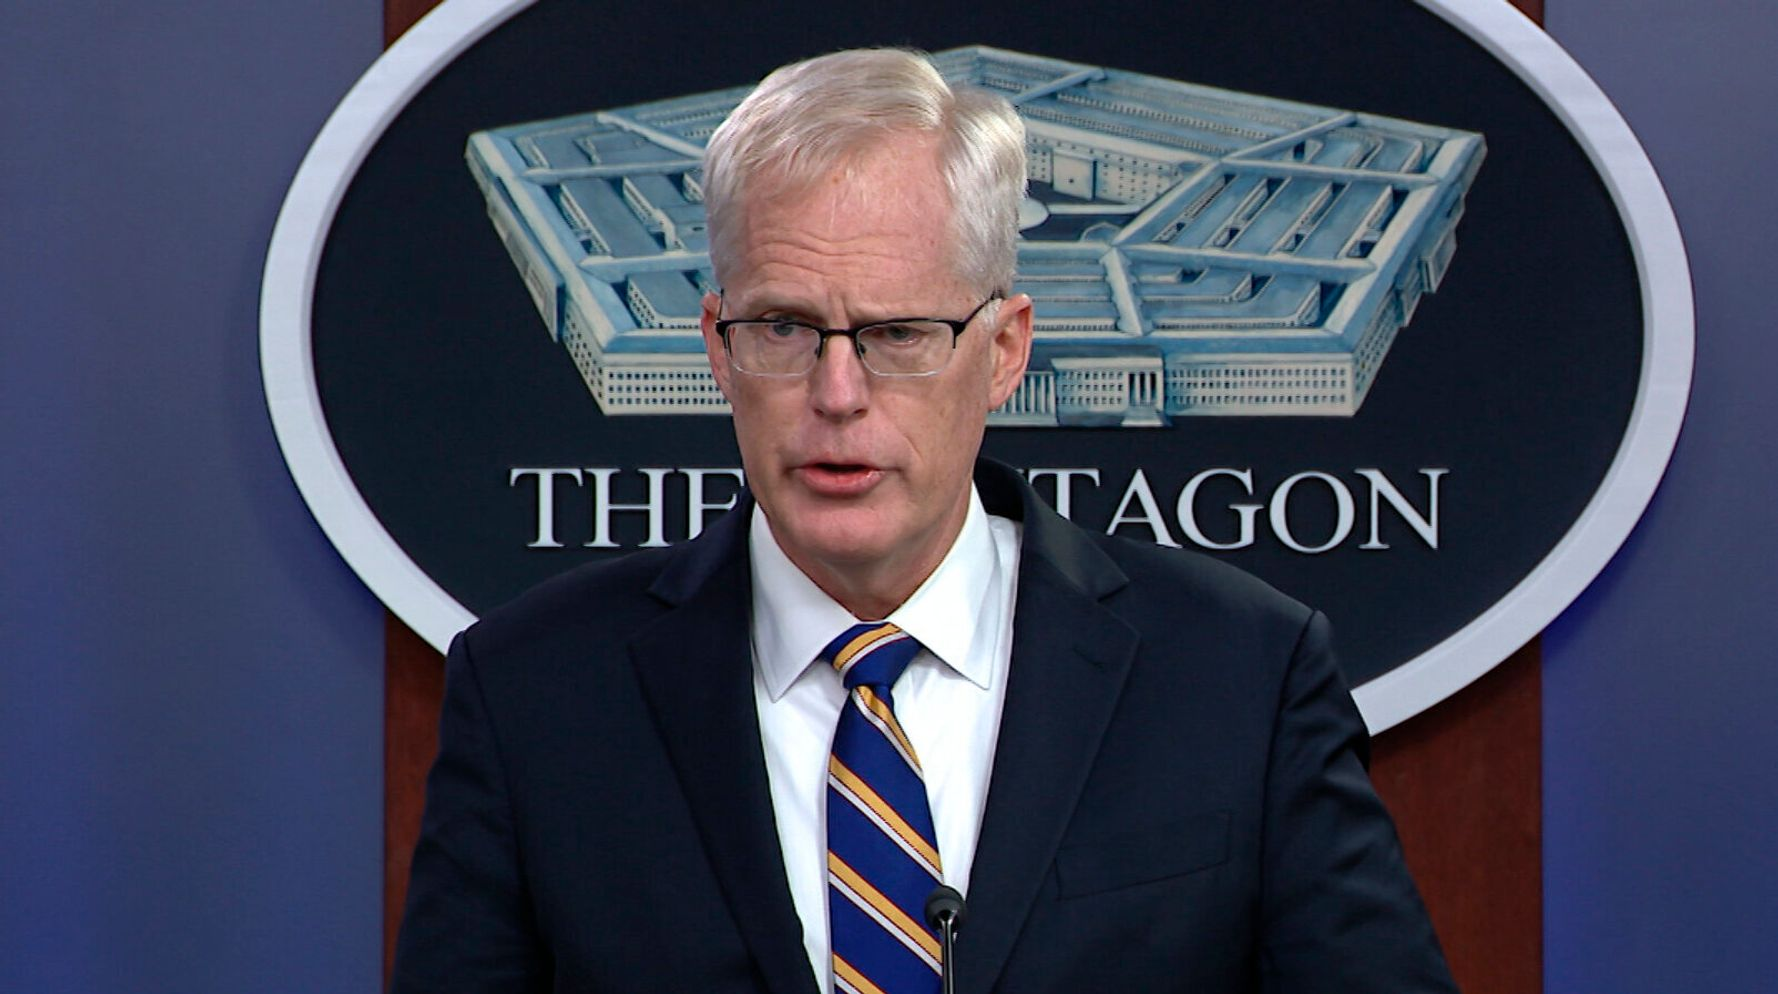 Acting Pentagon Chief Thinks Troop Reductions 'Fraught With Risk'